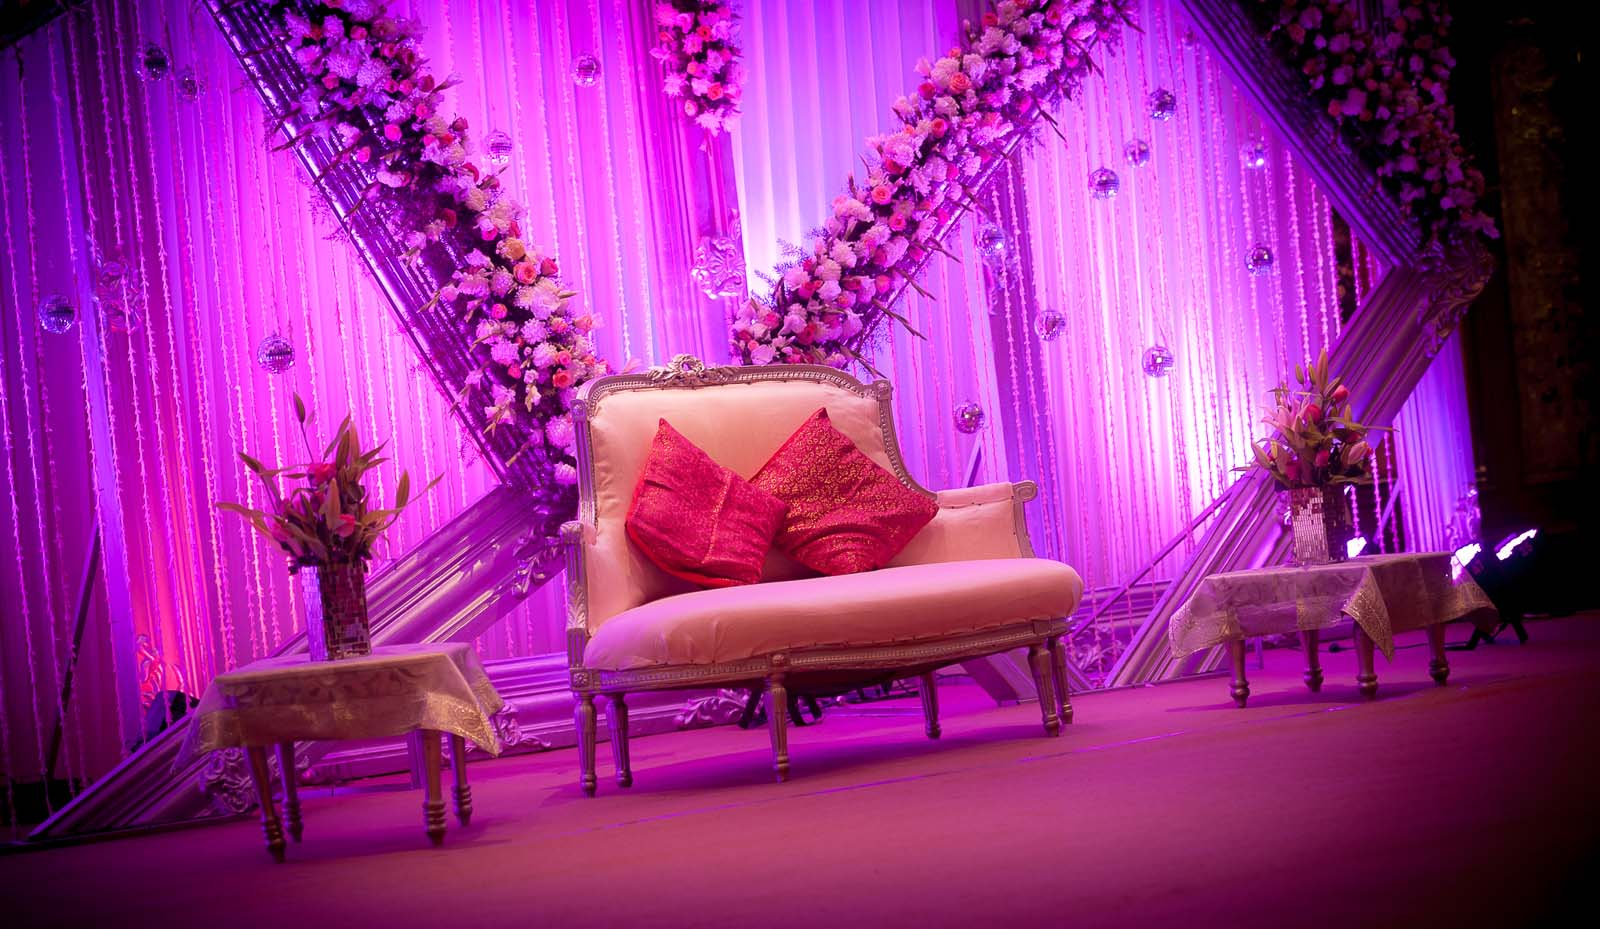 candid-wedding-photography-bangalore-leela-palace-stage